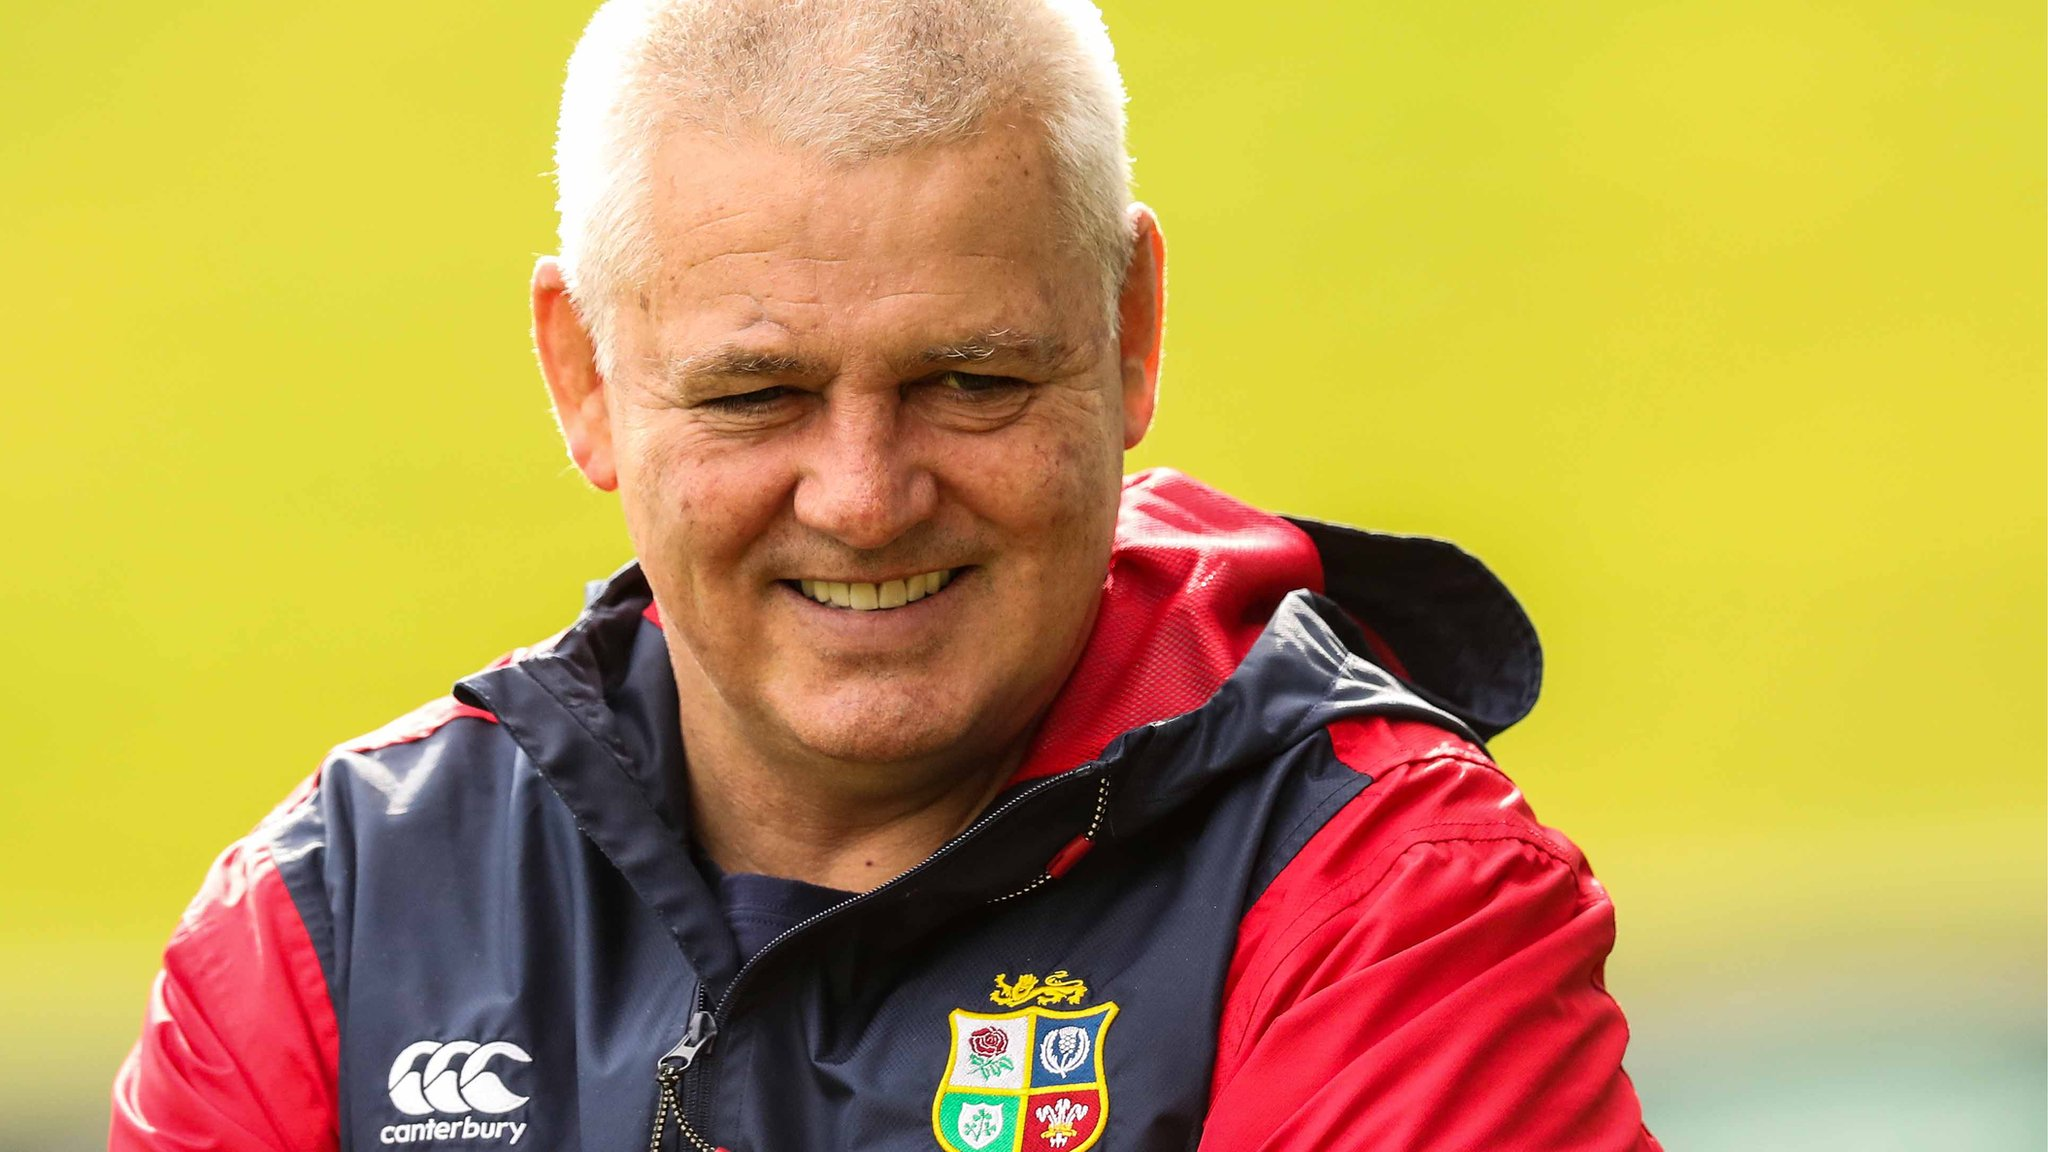 Warren Gatland awaiting 'concrete' job offers as Wales tenure draws to close